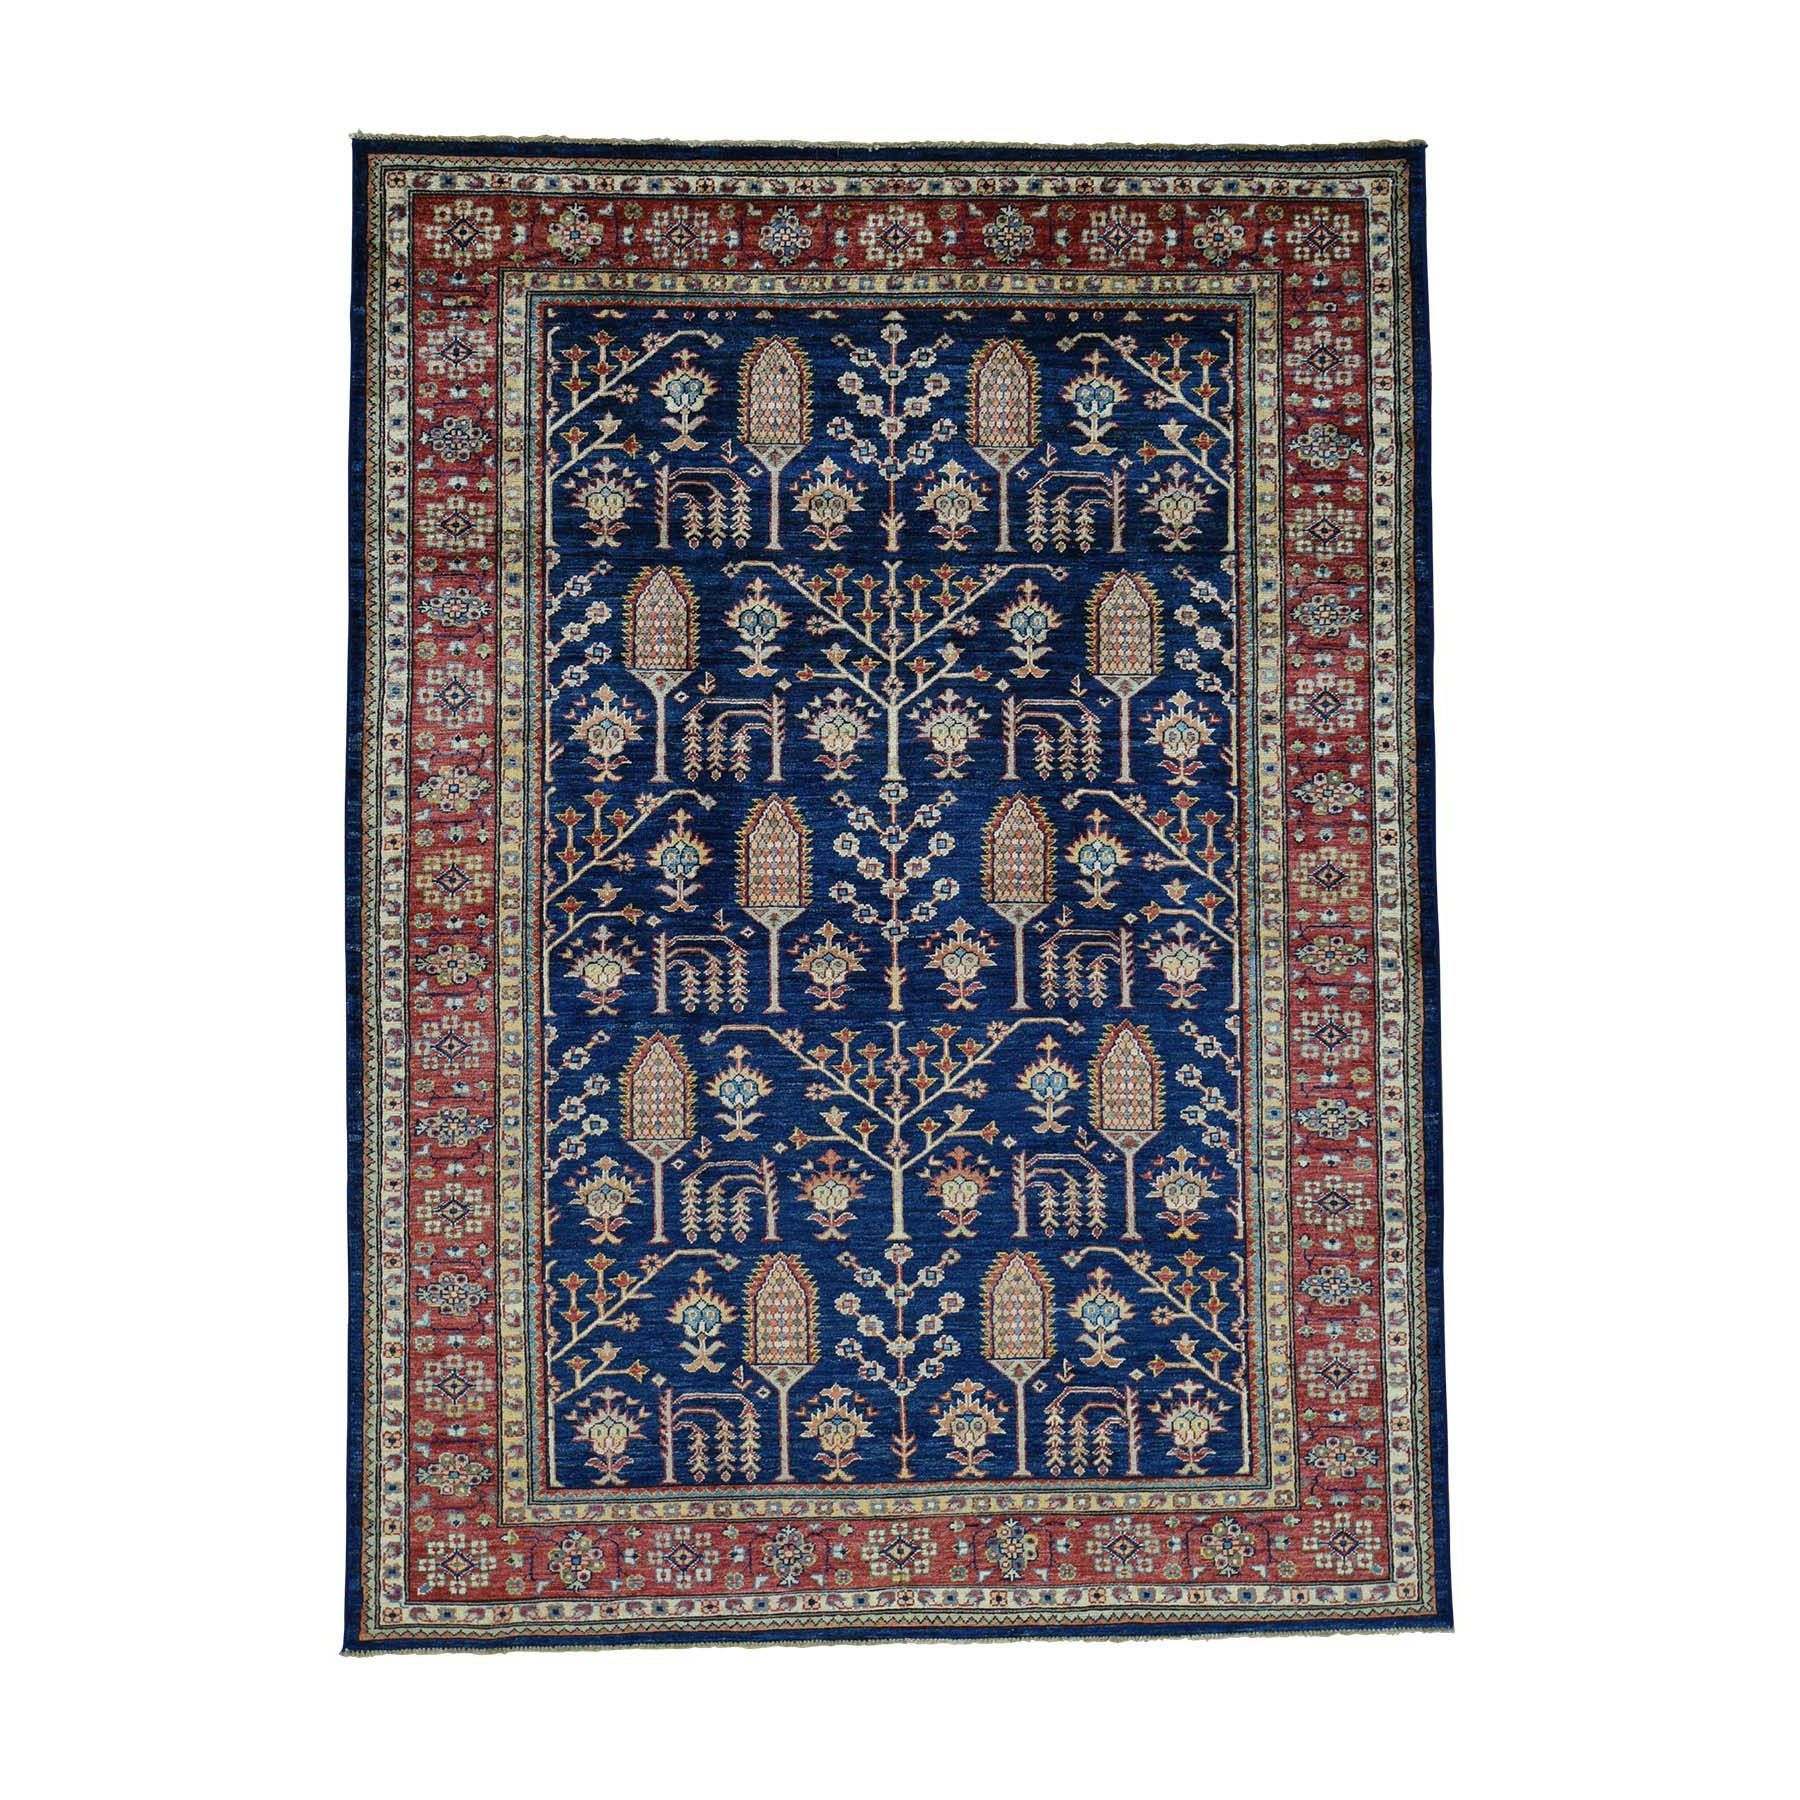 "1800getarug Super Kazak With Willow And Cypress Tree Design Rug (5'8x7'8) (Exact Size: 5'8"" x 7'8""), Blue, Size 6' x 8' (Wool, Oriental)"